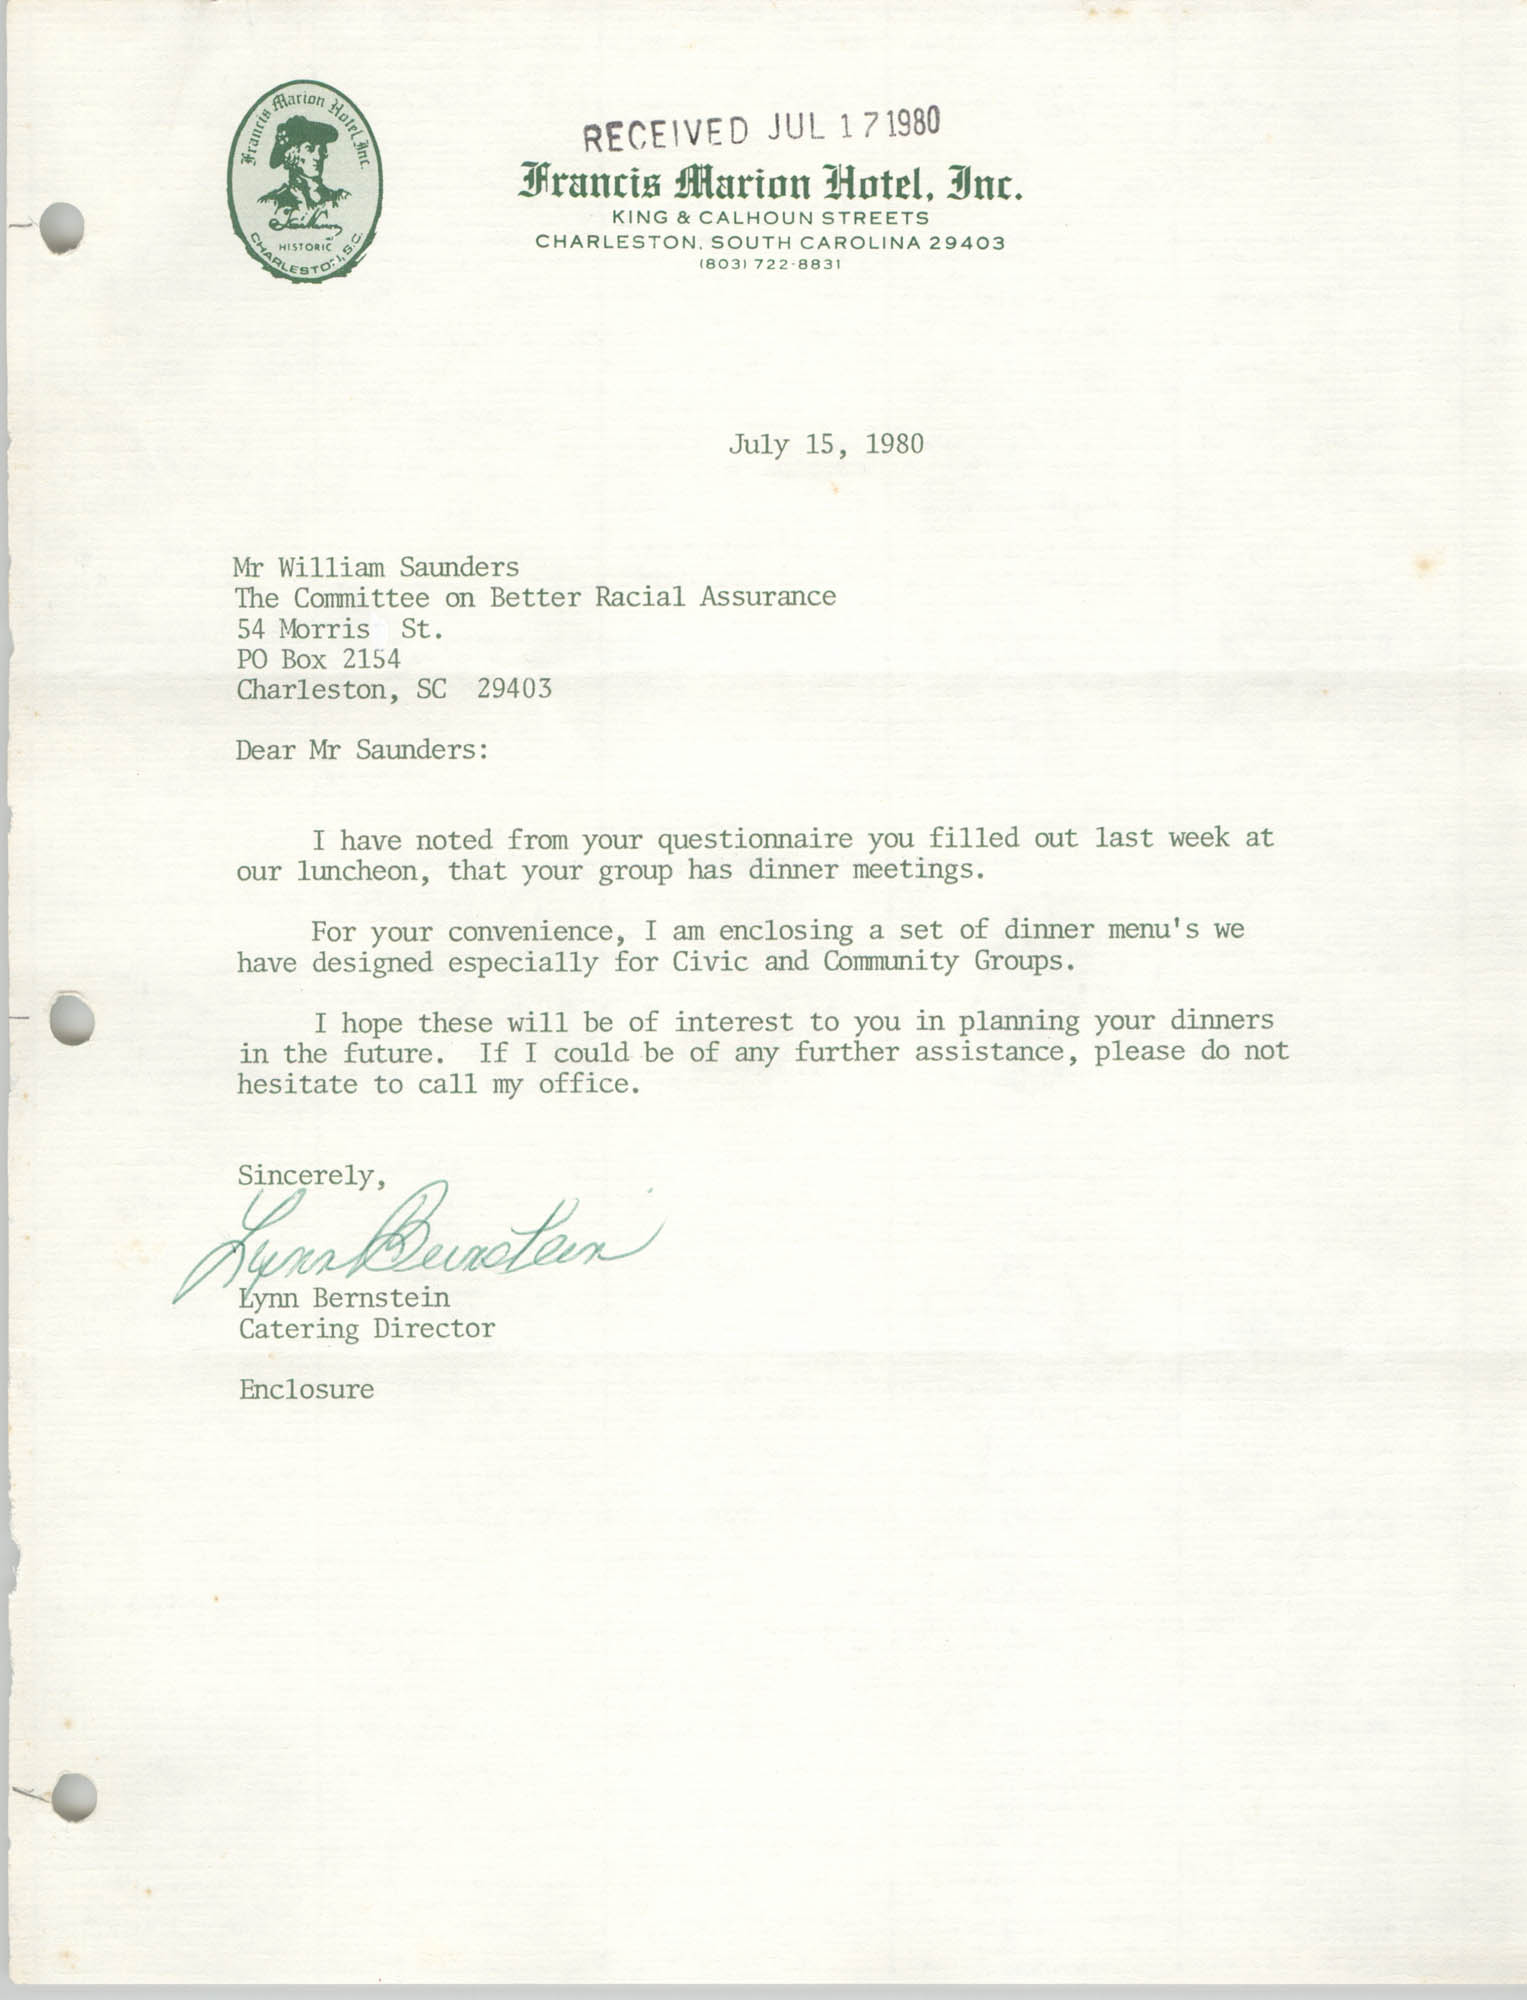 Letter from Lynn Bernstein to William Saunders, July 15, 1980